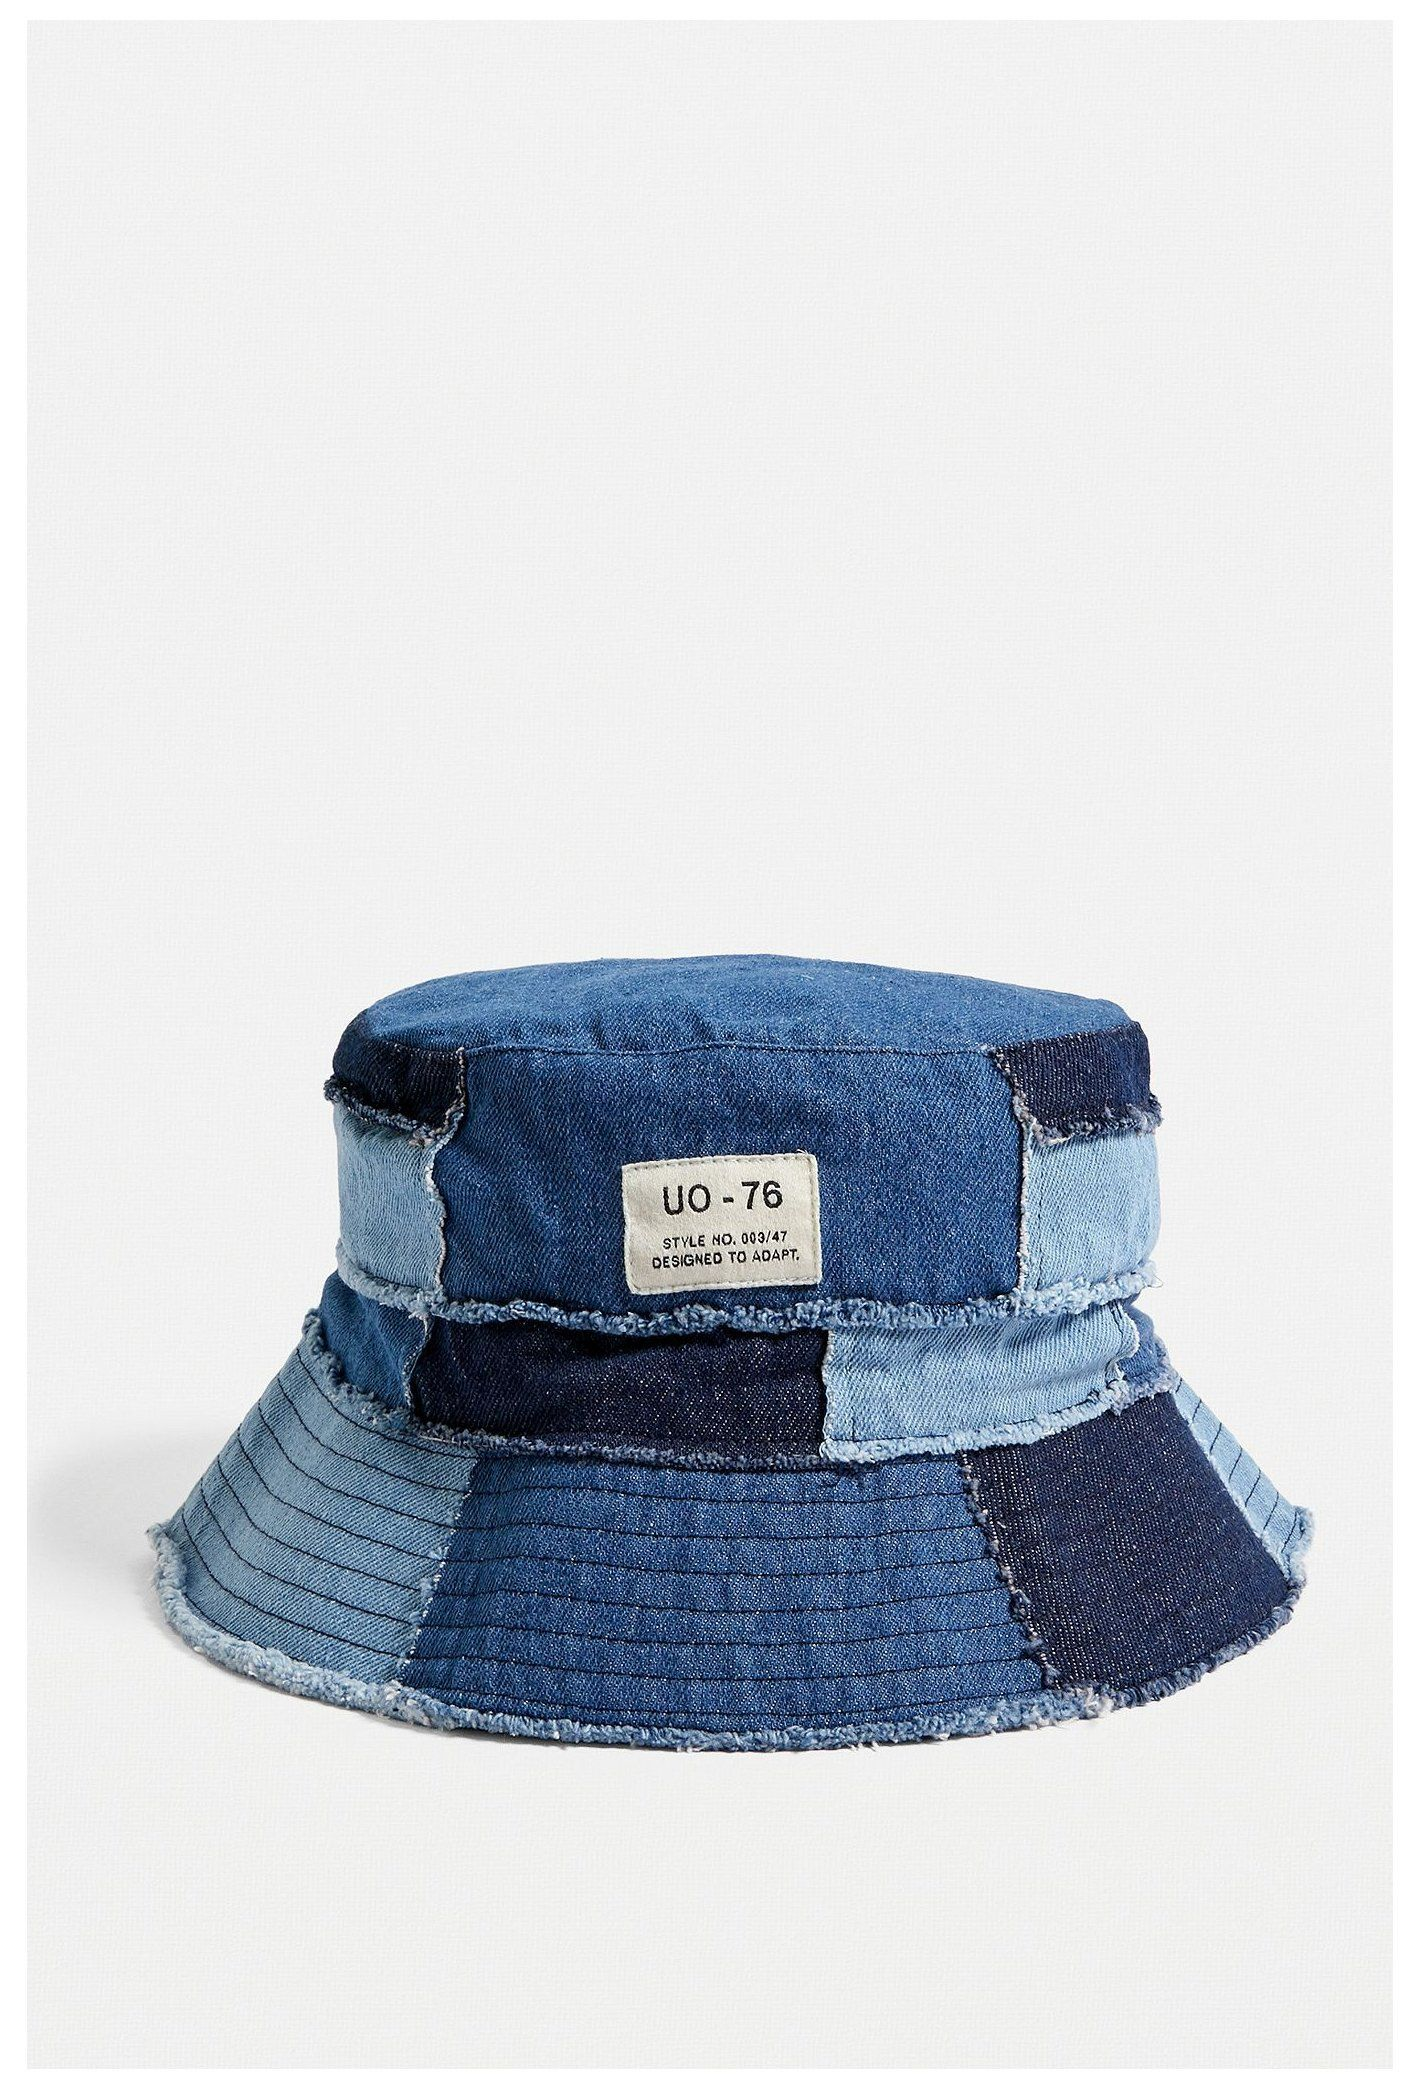 Uo Denim Patchwork Bucket Hat Denim Bucket Hat Urban Outfitters Denimbuckethaturbanoutfitters Pat Bucket Hat Fashion Diy Sewing Clothes Refashion Clothes